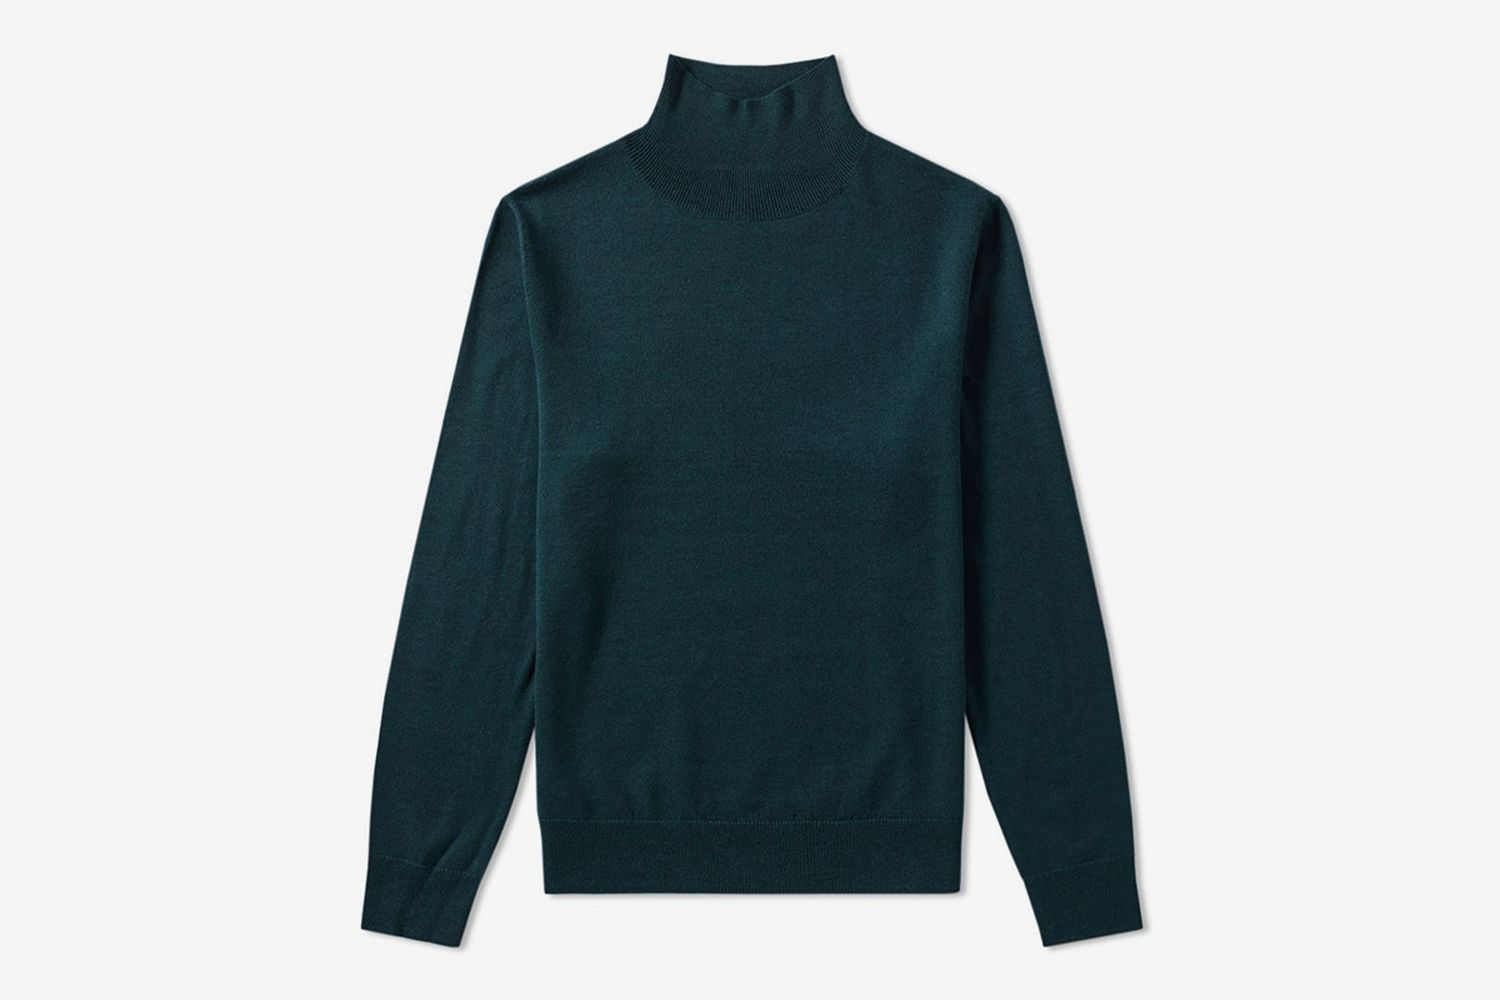 Dundee Roll Neck Knit